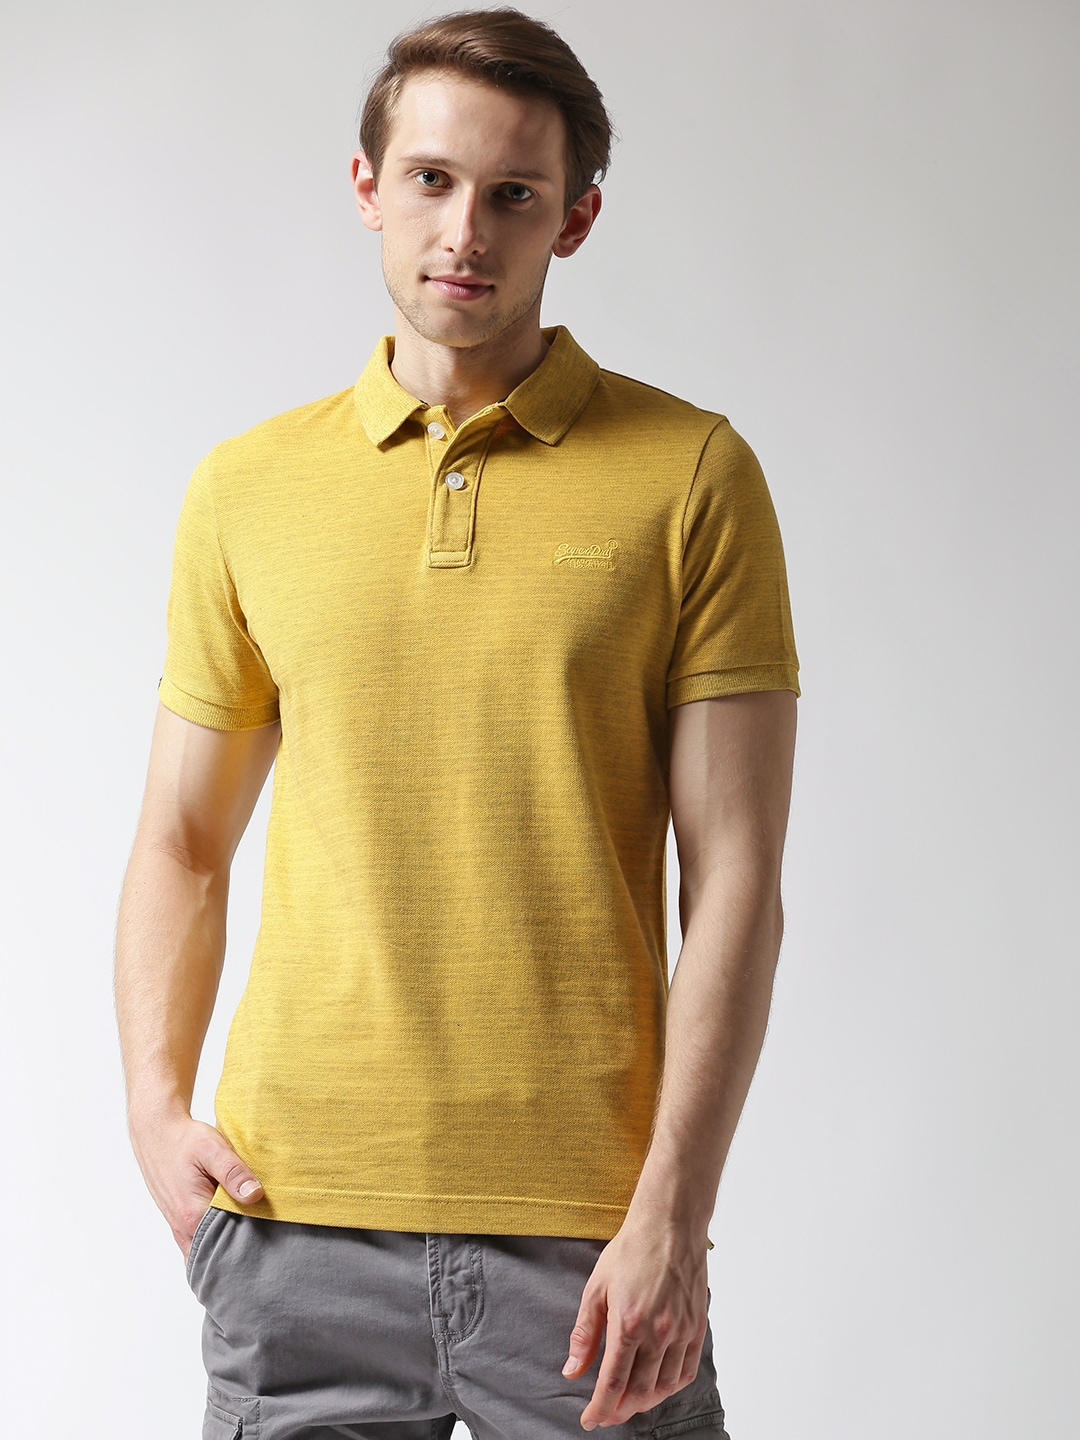 c75333f0f53 Superdry And White Tshirts Men - Buy Superdry And White Tshirts Men online  in India